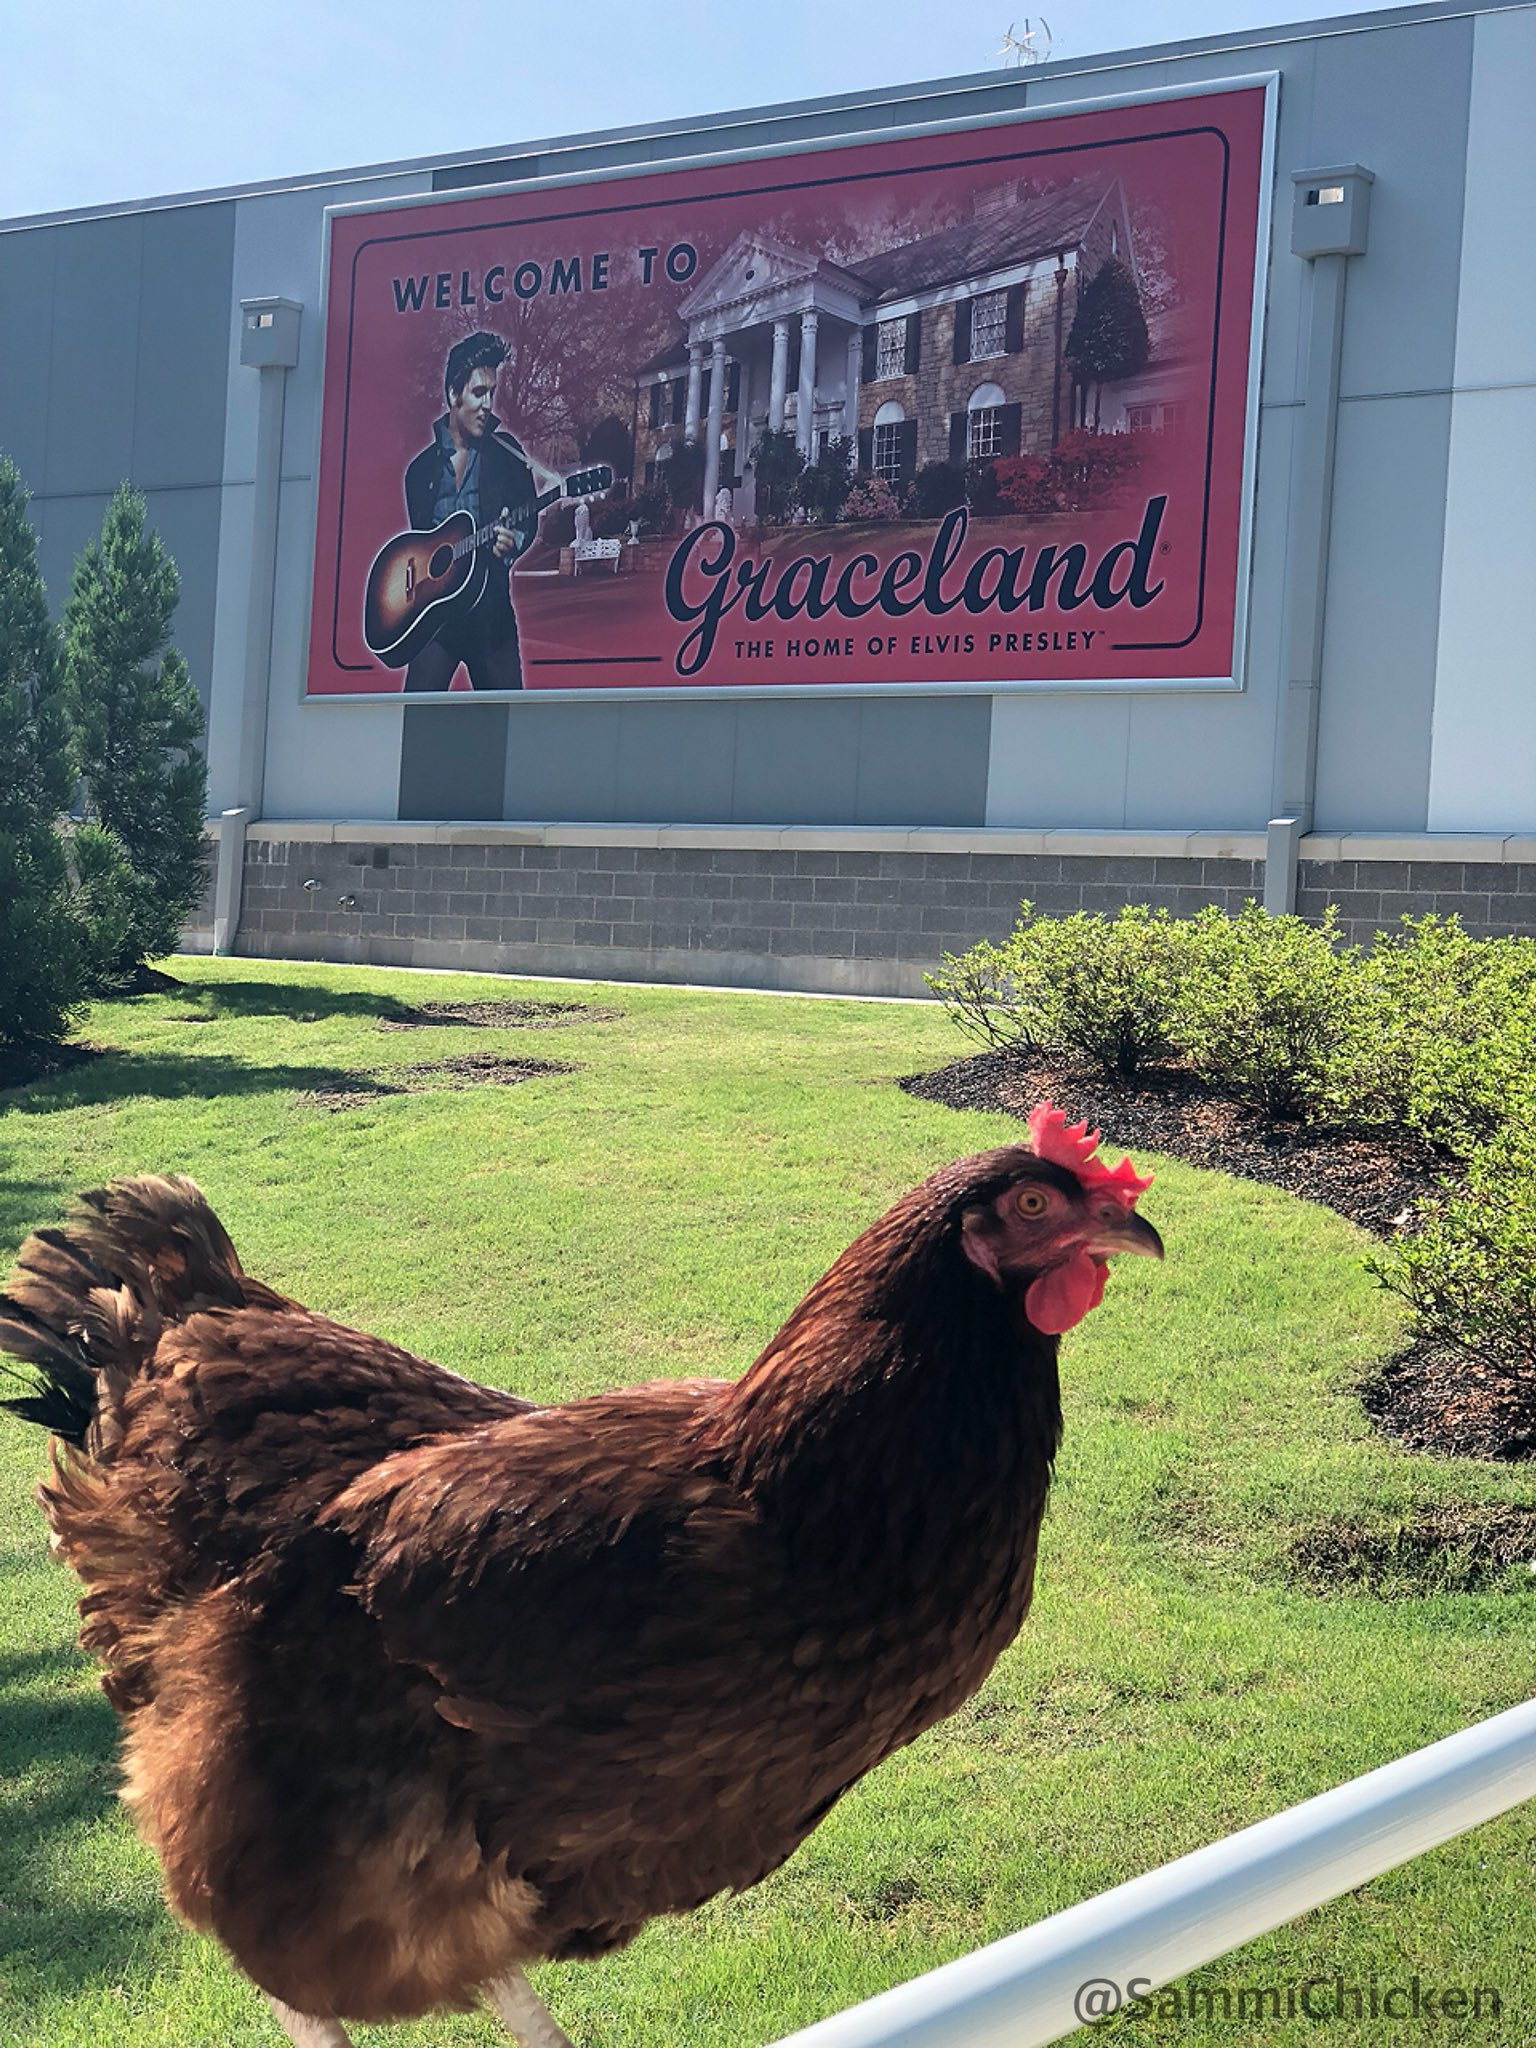 """Sammi Chicken on Twitter: """"Such a beautiful place, this Graceland. ➡️➡️I walked through the gates of Graceland...And then walked back though. #elvis #elvispresley #graceland #memphis #memphisinmay #tennessee #roadtrip #chickenofthesea #beachchicken ..."""